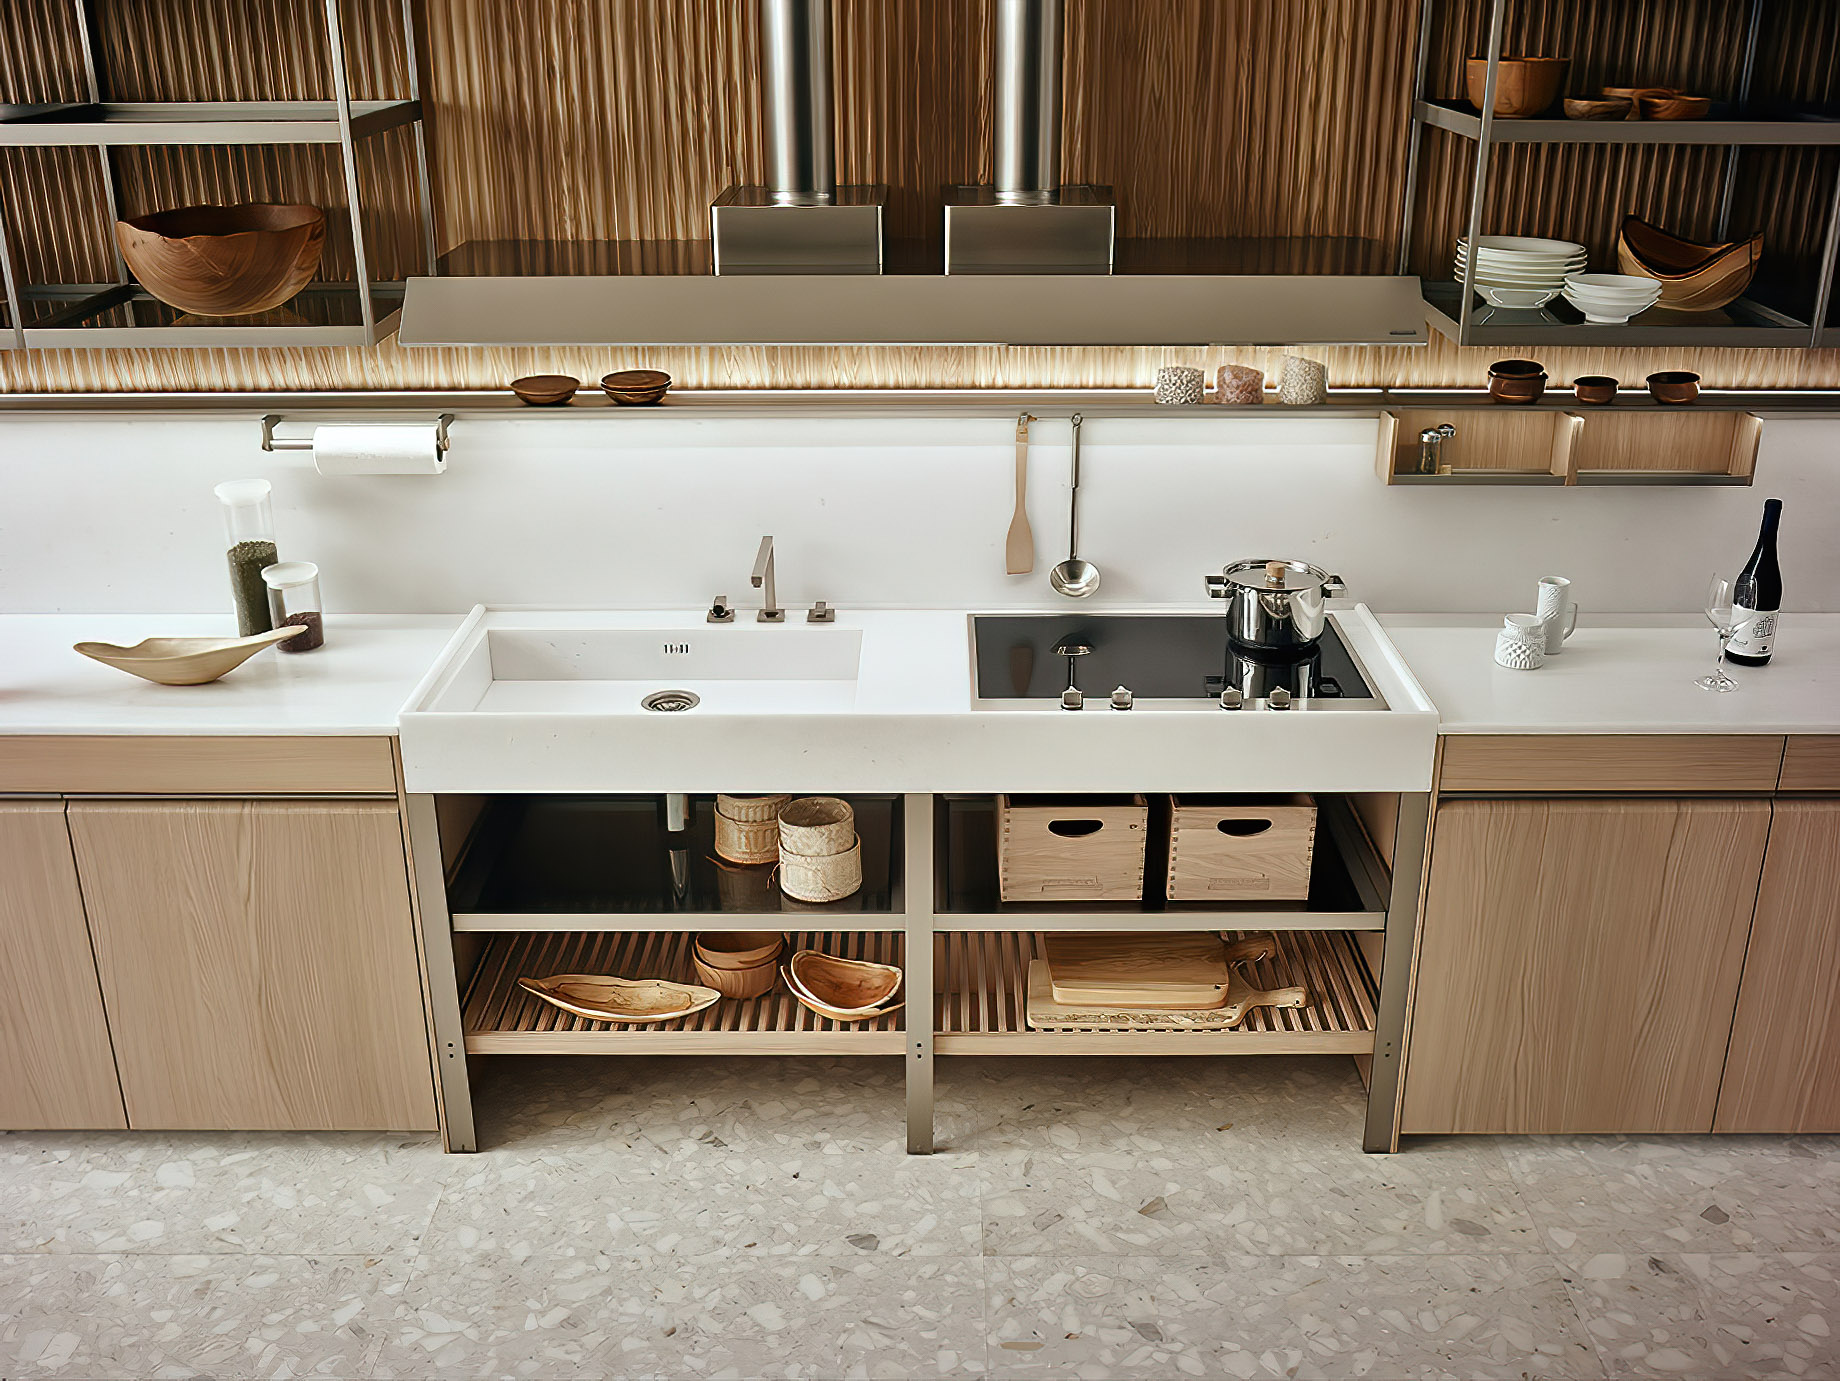 K-lab Contemporary Kitchen Ernestomeda Italy – Giuseppe Bavuso – Dual Cooking and Washing MonoBloc